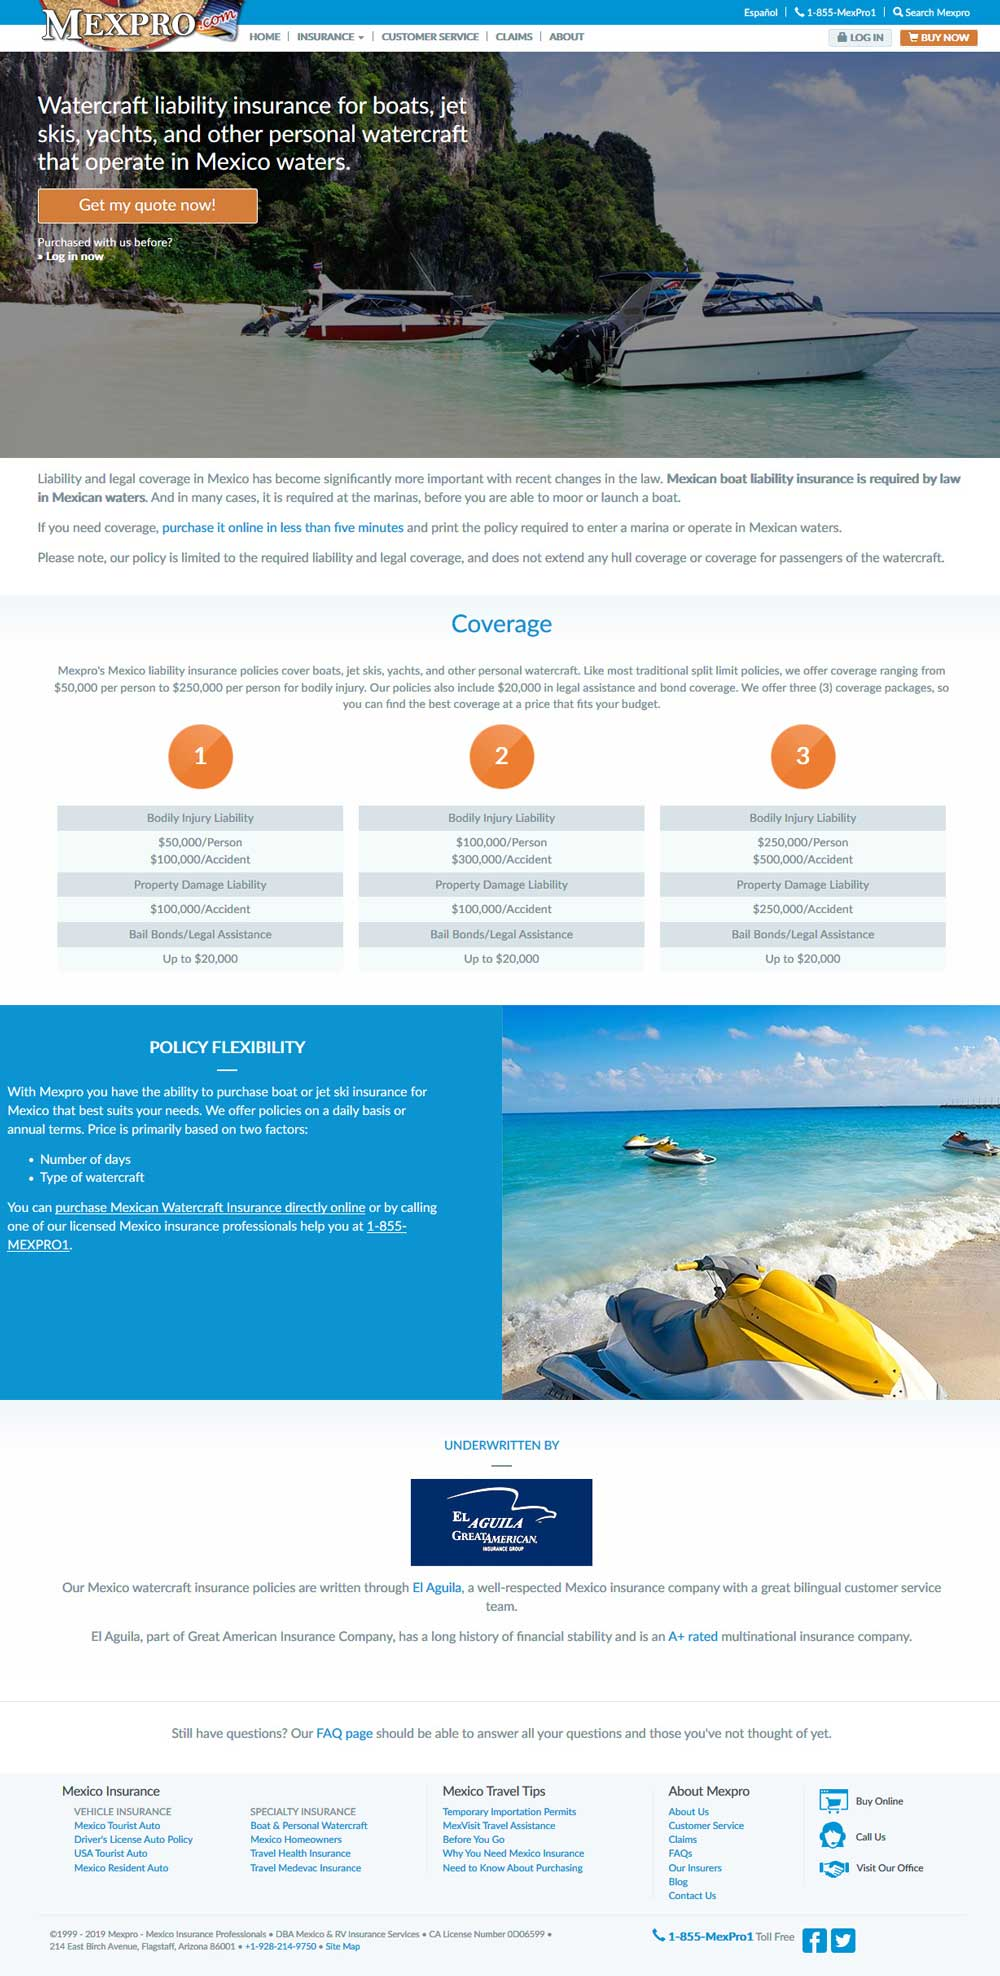 Mexican Insurance for watercraft in Puerto Penasco (Rocky Point Mexico). Click here to visit MexPro's watercraft web page.